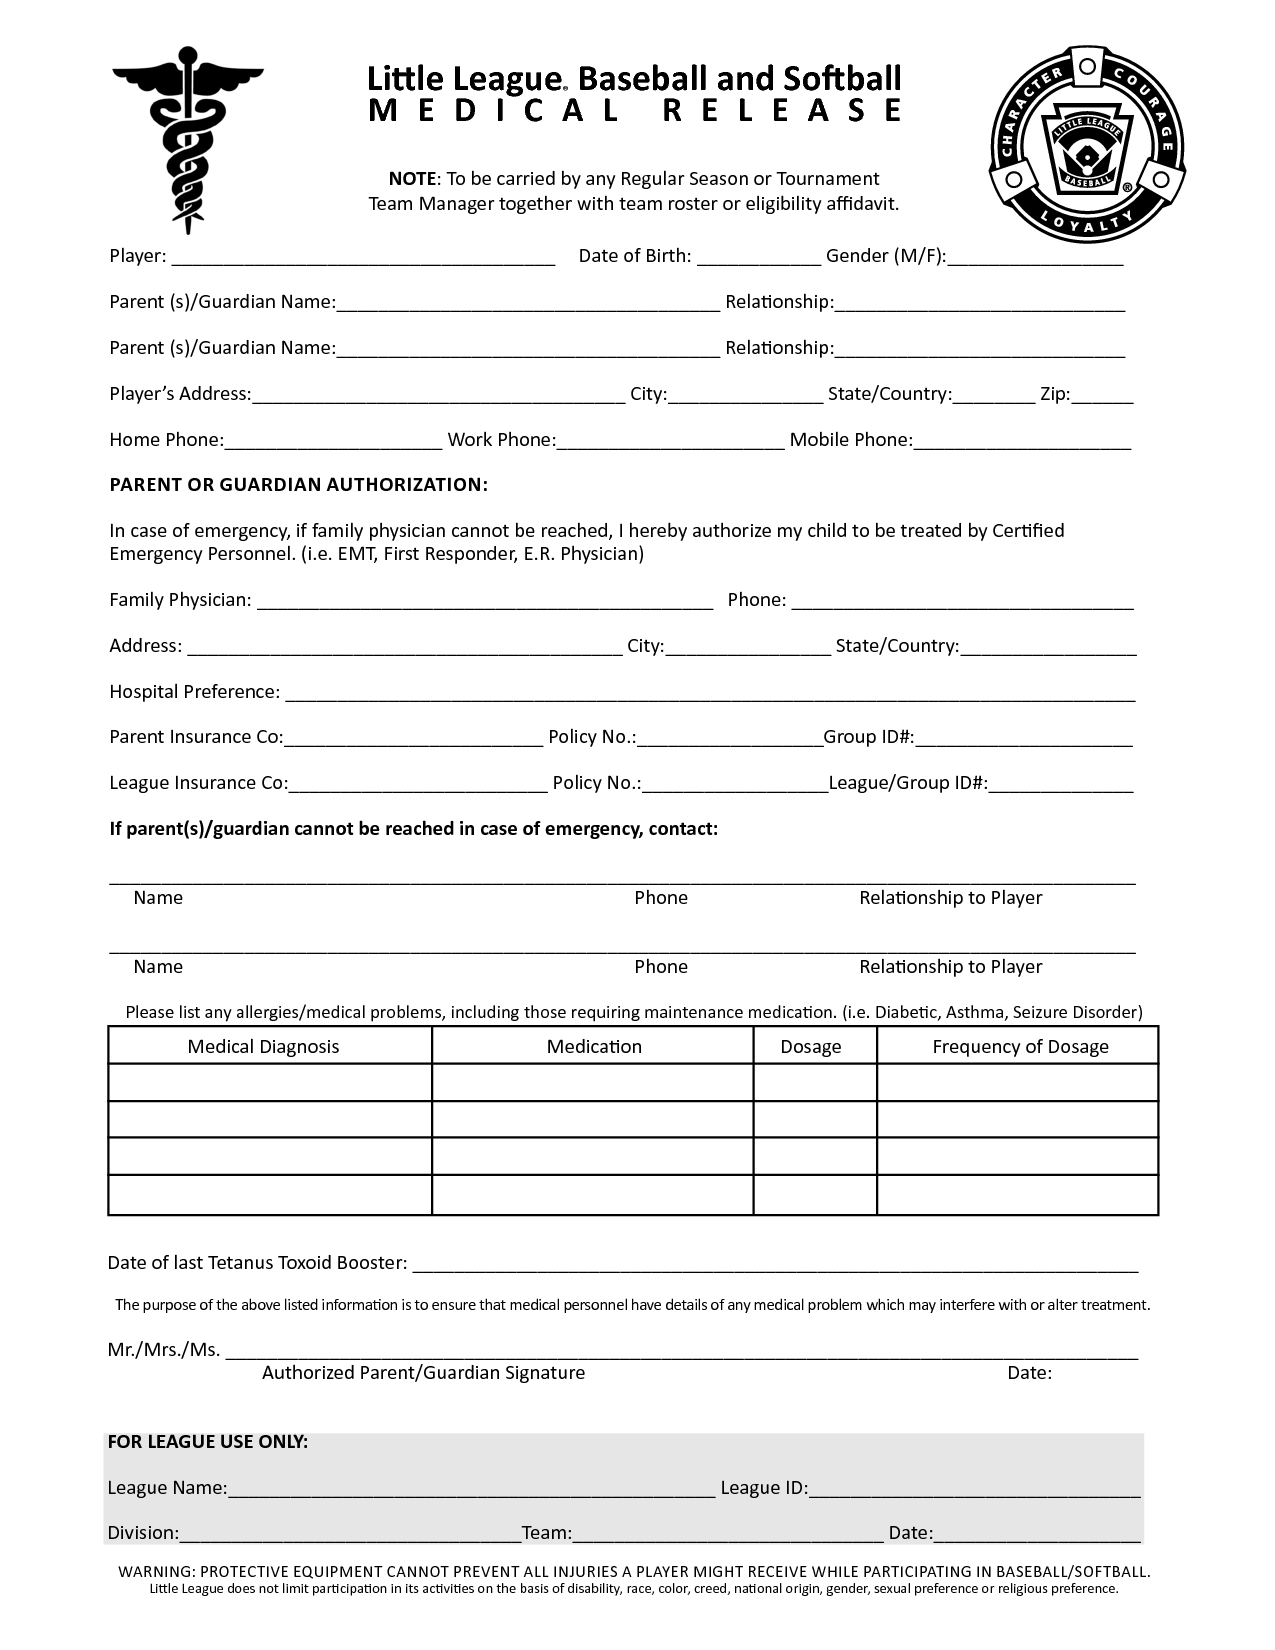 Free Printable Medical Release Forms – Printable Medical Release Form for Children